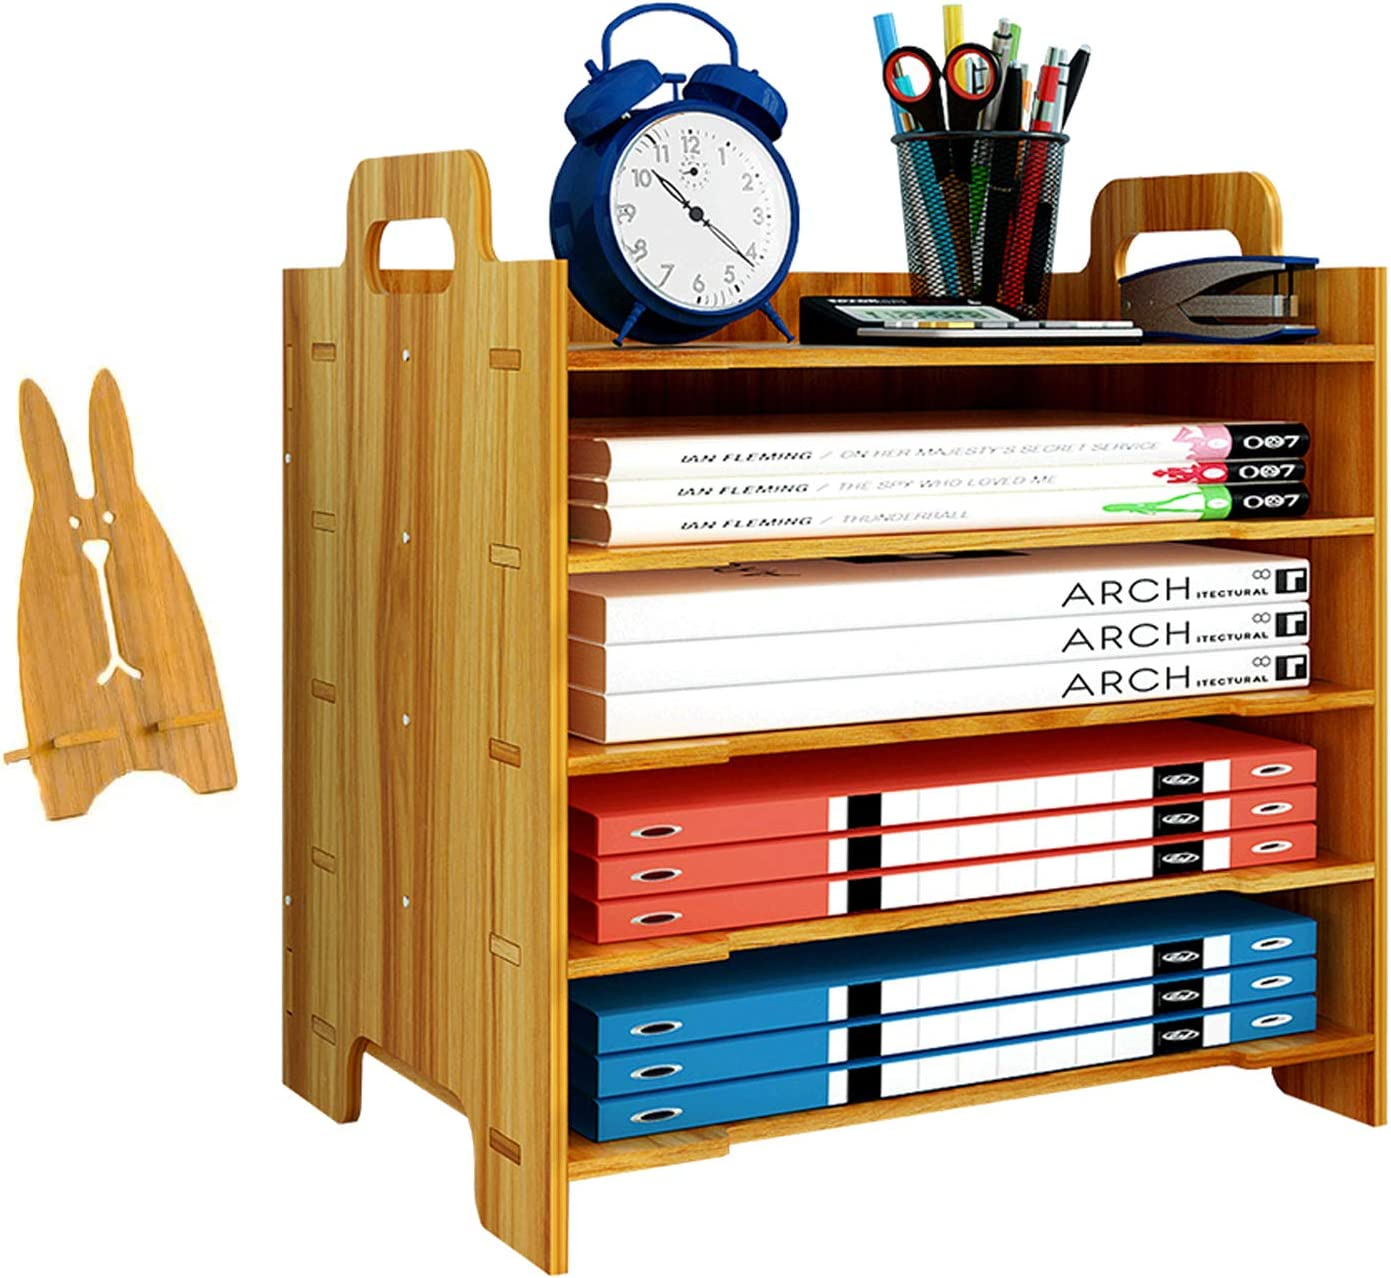 Marbrasse 5 Trays Wooden Desk File Organizer, Document Mail Paper Organizer Letter Tray Storage Shelf Sorter for Office Home Supplies (Cherry Color)